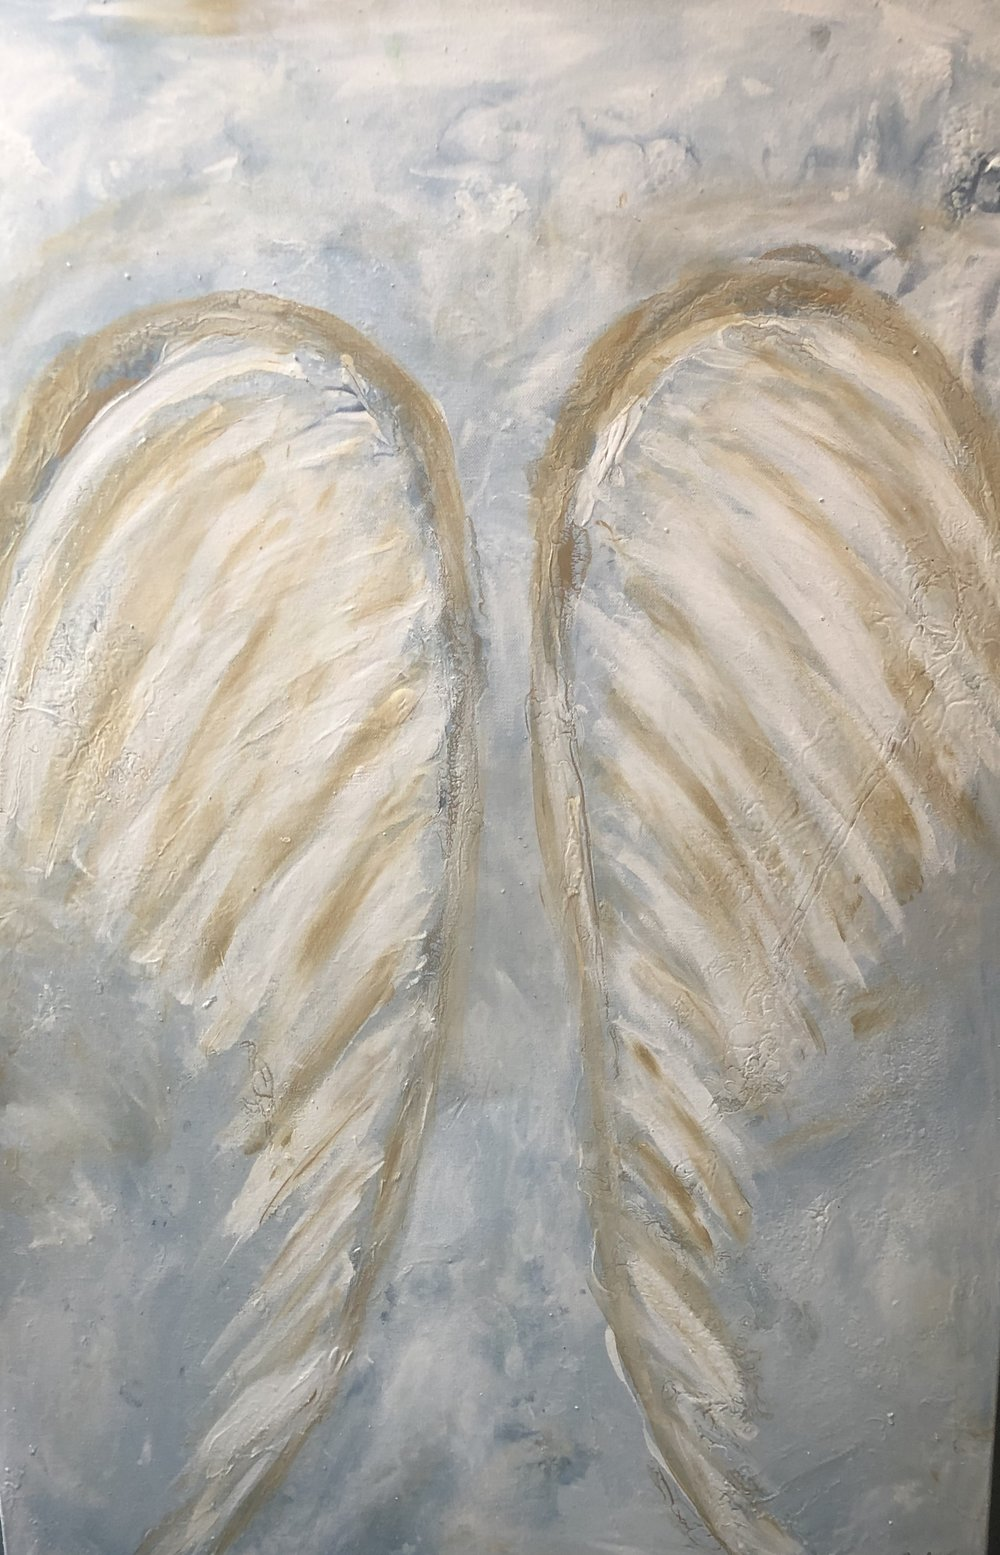 """Heavenly Soaring 36"""" x 24"""" x 1.5"""" acrylic on canvas $725 Available"""